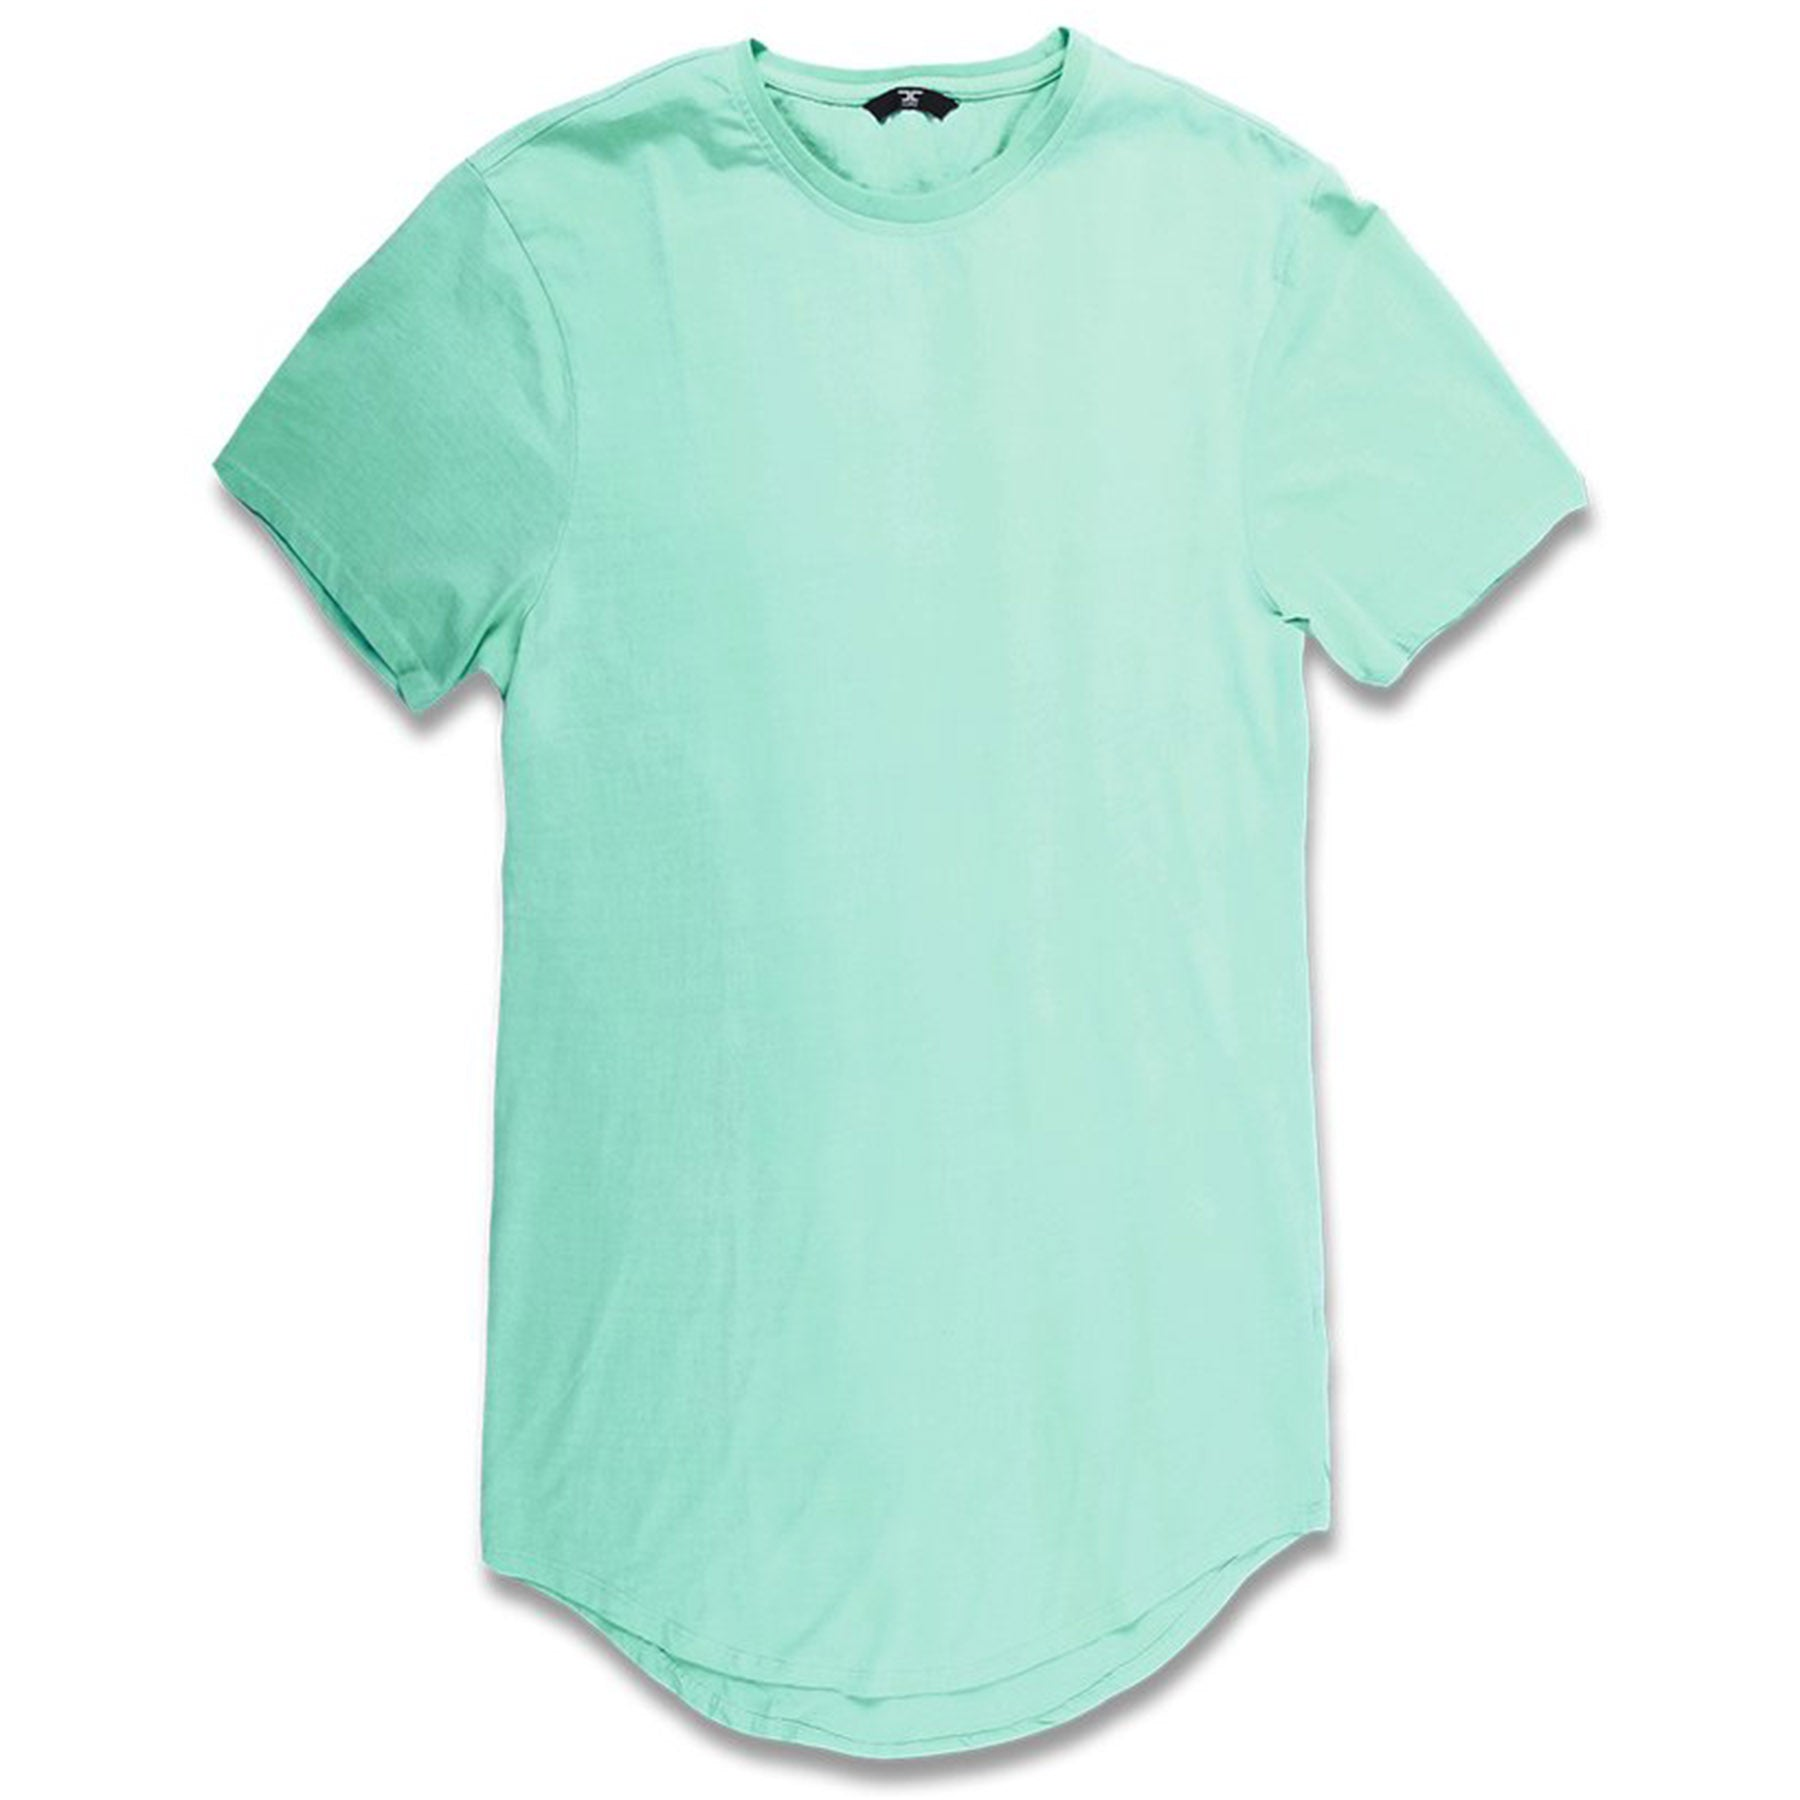 aa912c3805c the mint long tail t-shirt is mint with a crewneck